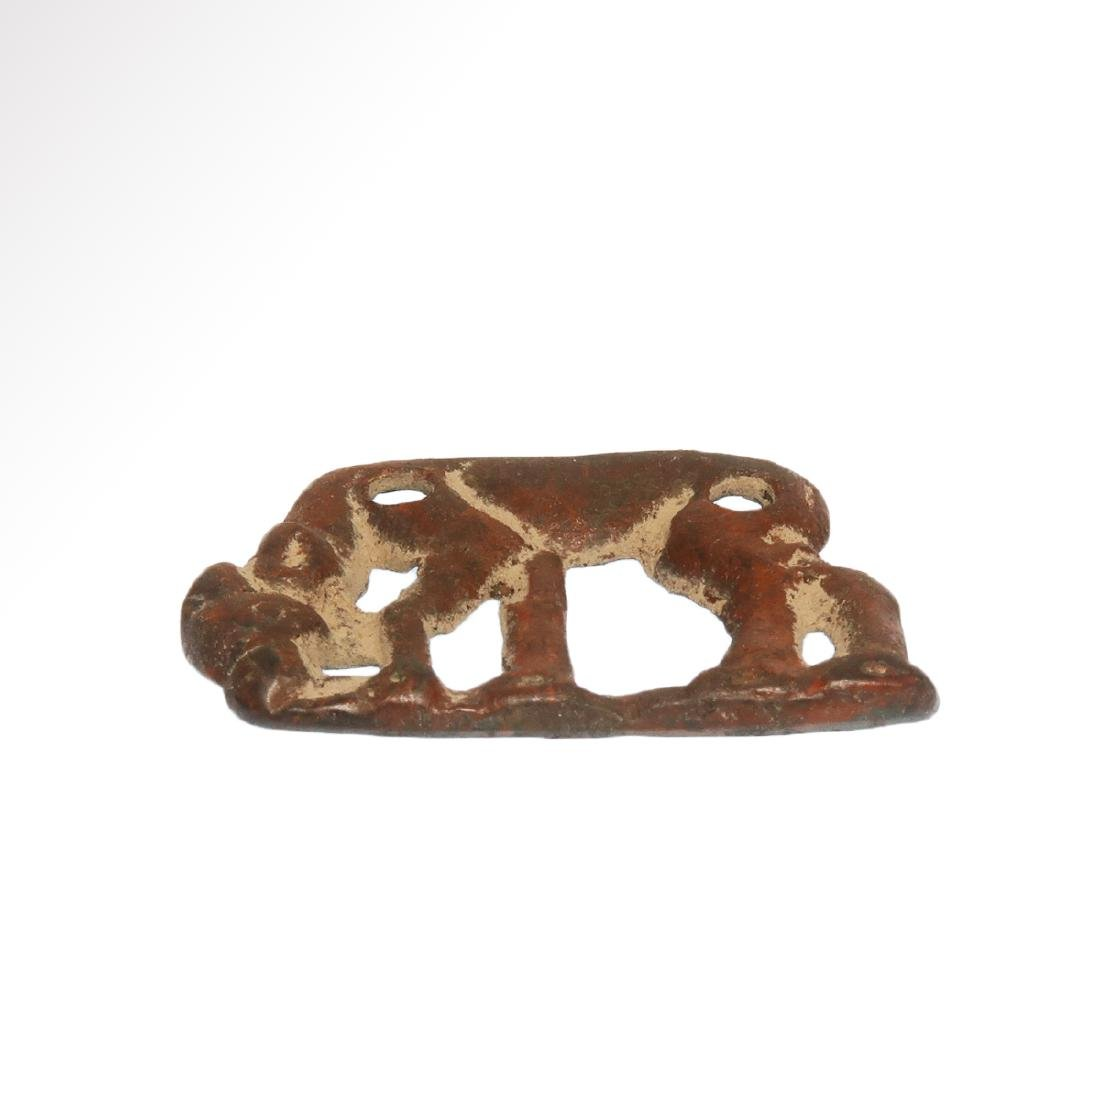 Scythian Openwork Plaque With Grazing Stag, c. 5th - - 3